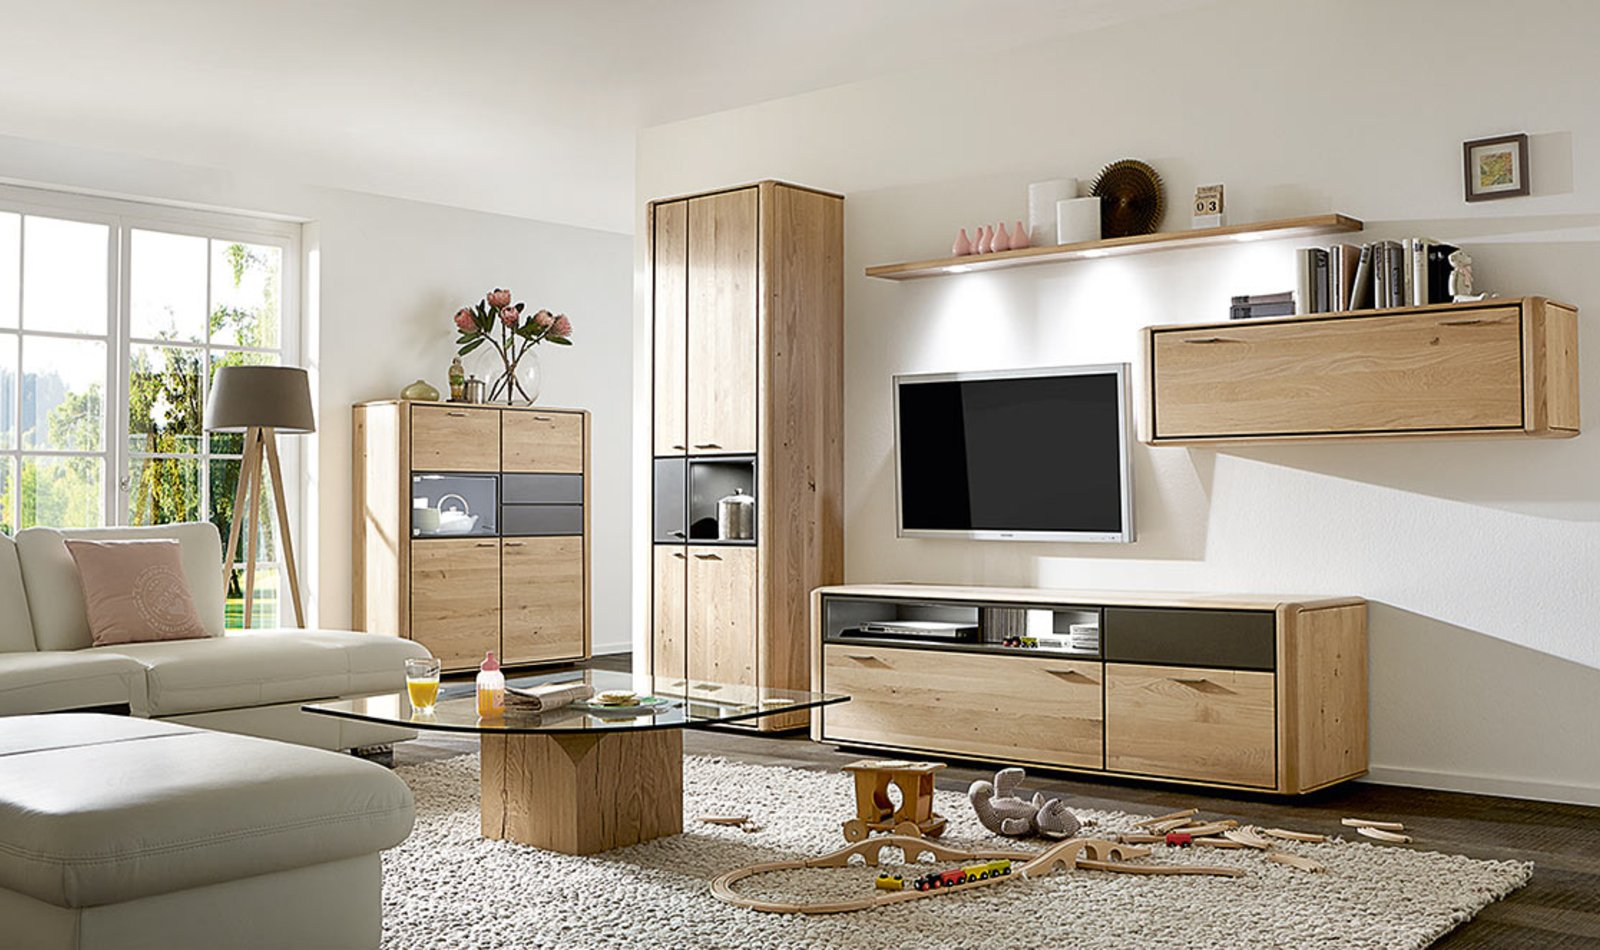 esszimmer programme emilio venjakob m bel vorsprung durch design und qualit t. Black Bedroom Furniture Sets. Home Design Ideas